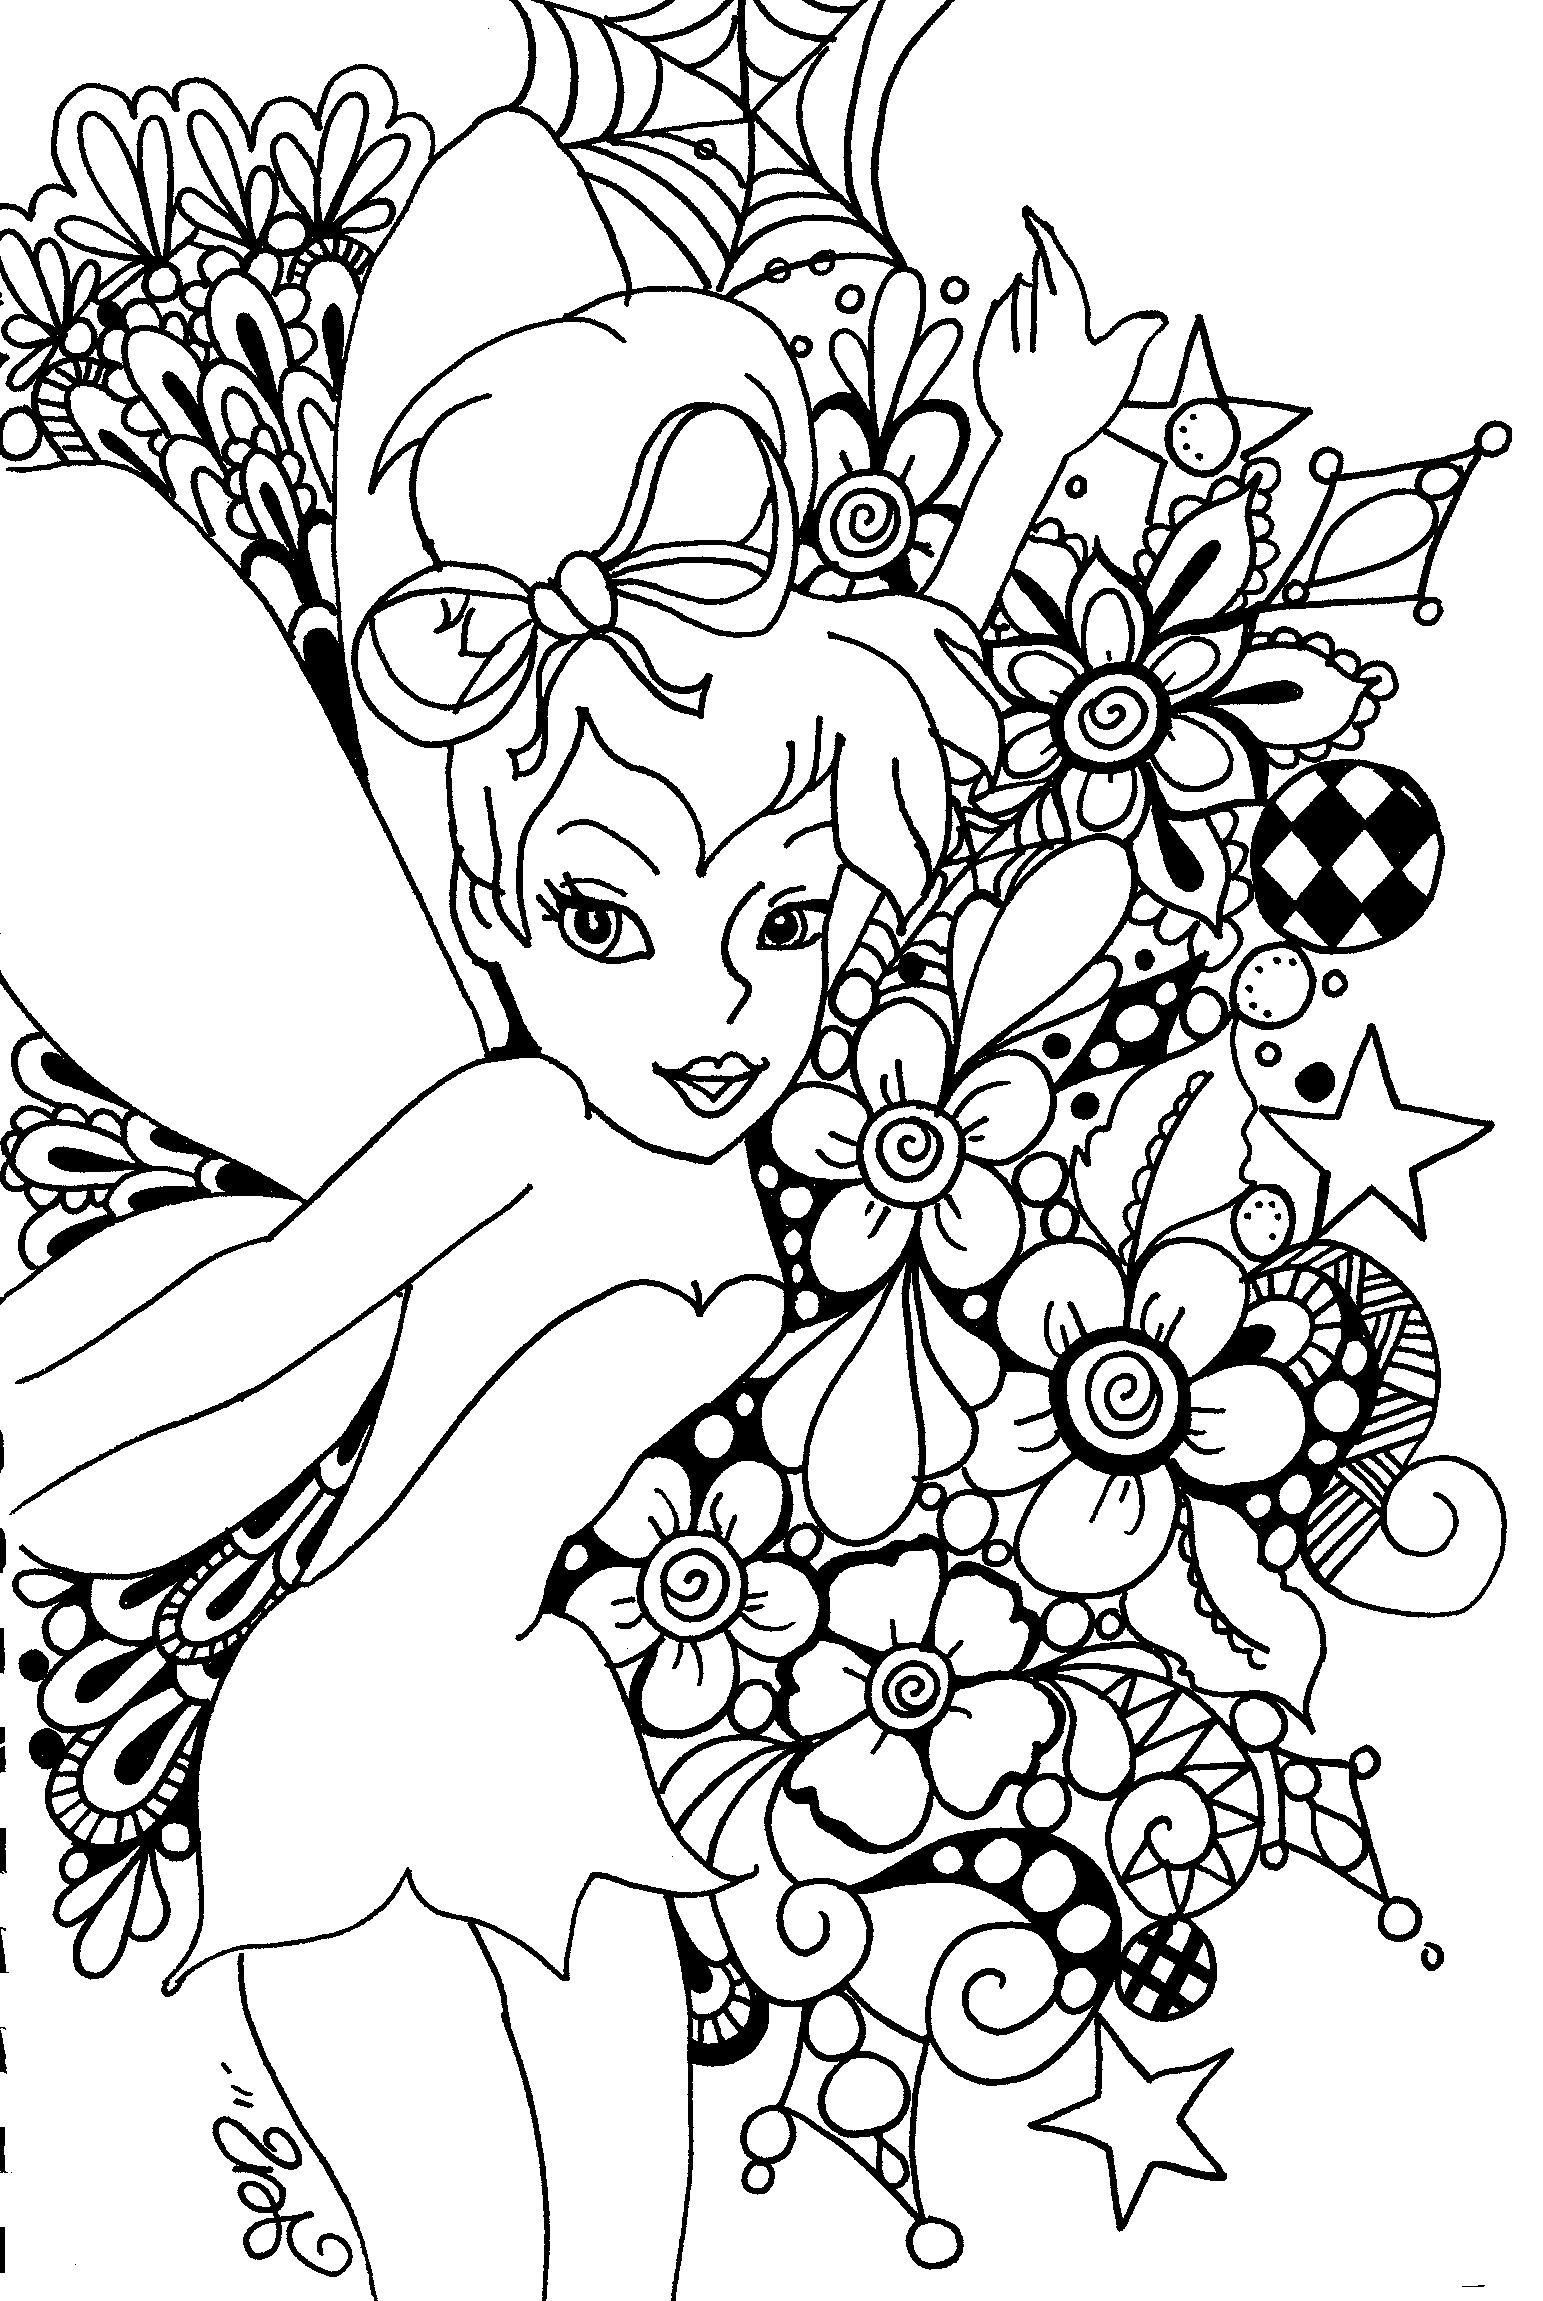 Free Printable Tinkerbell Coloring Pages For Kids | Art!! | Fairy - Tinkerbell Coloring Pages Printable Free